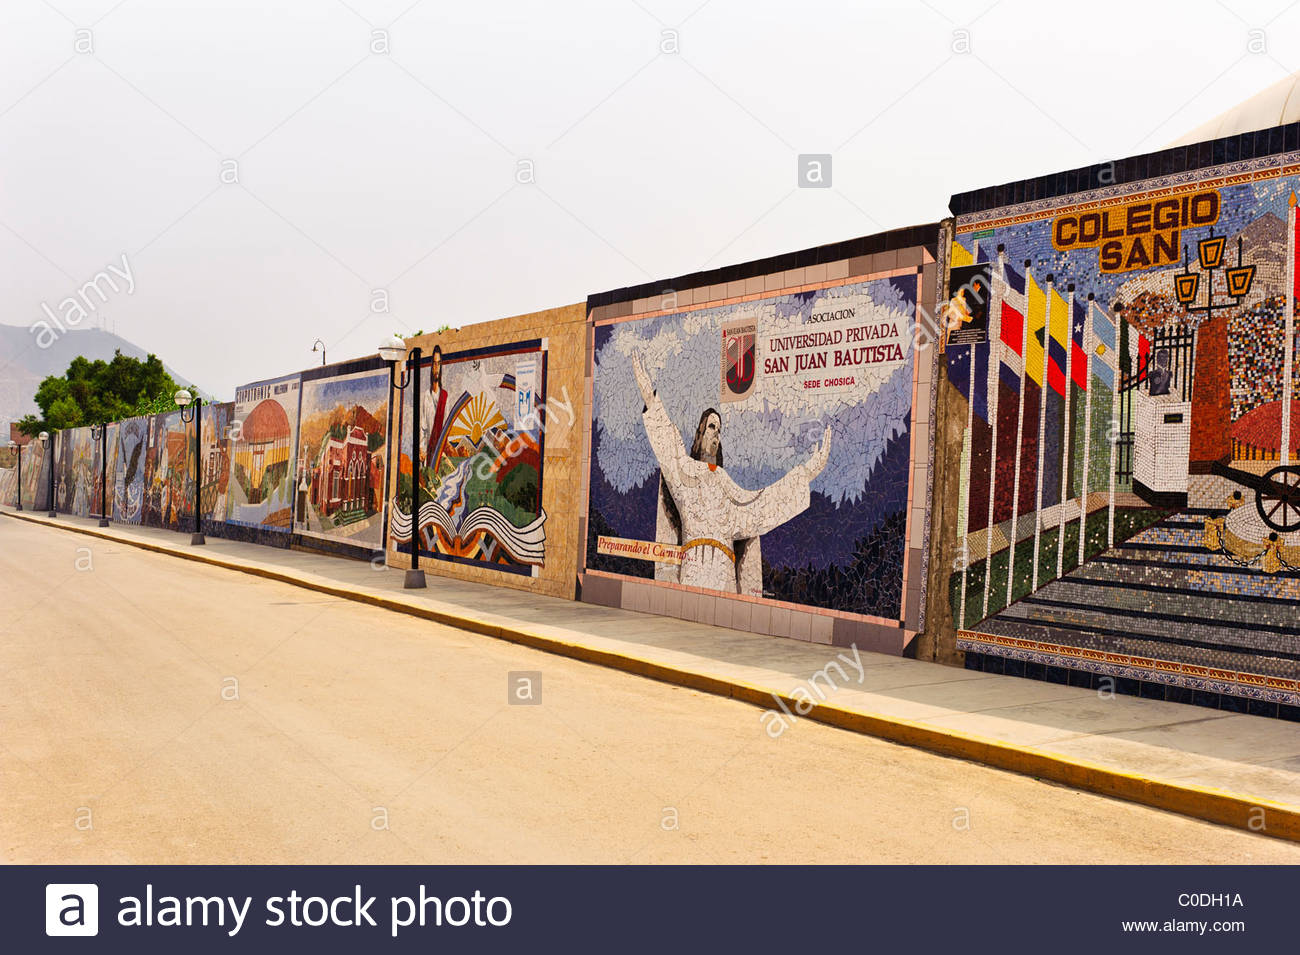 Signage created out of mosaic tiles adorns a wall in Chosica, Peru. - Stock Image